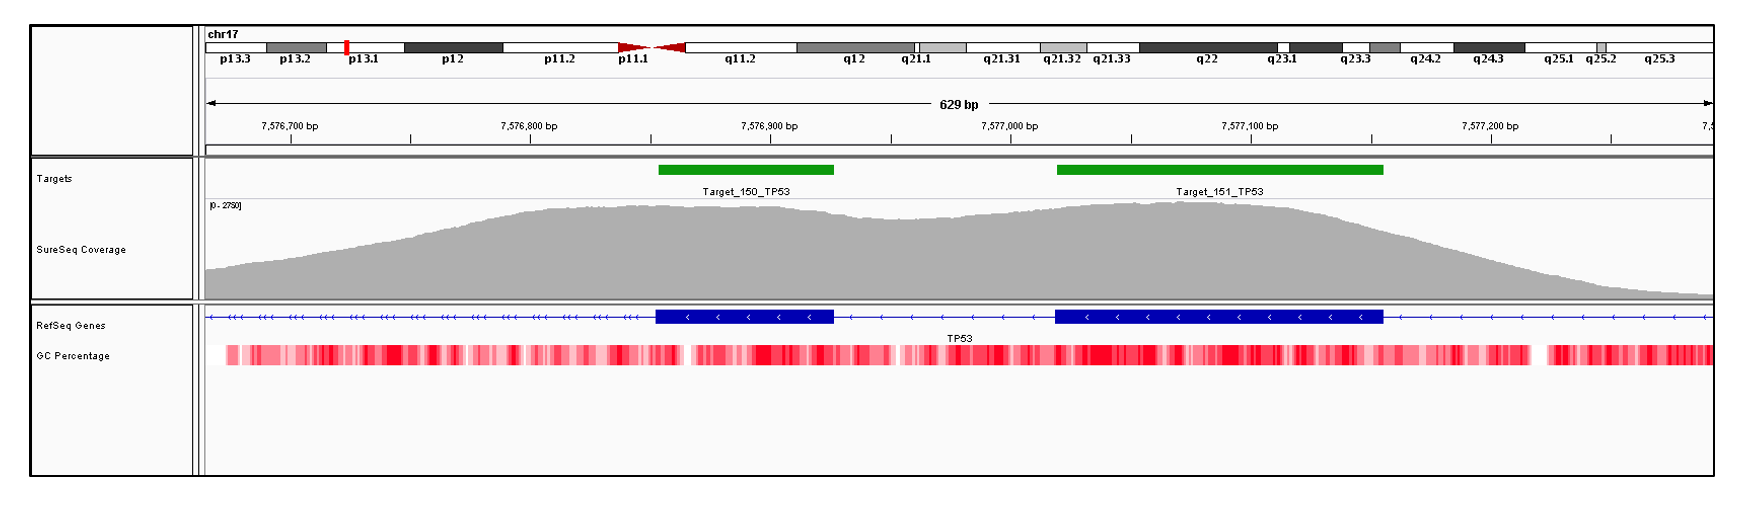 TP53 Exon 8 (hg19 chr17:7577019-7577155) and 9 (hg19 chr17:7576853-7576926). Depth of coverage per base (grey). Targeted region (green). Gene coding region as defined by RefSeq (blue). GC percentage (red). Image